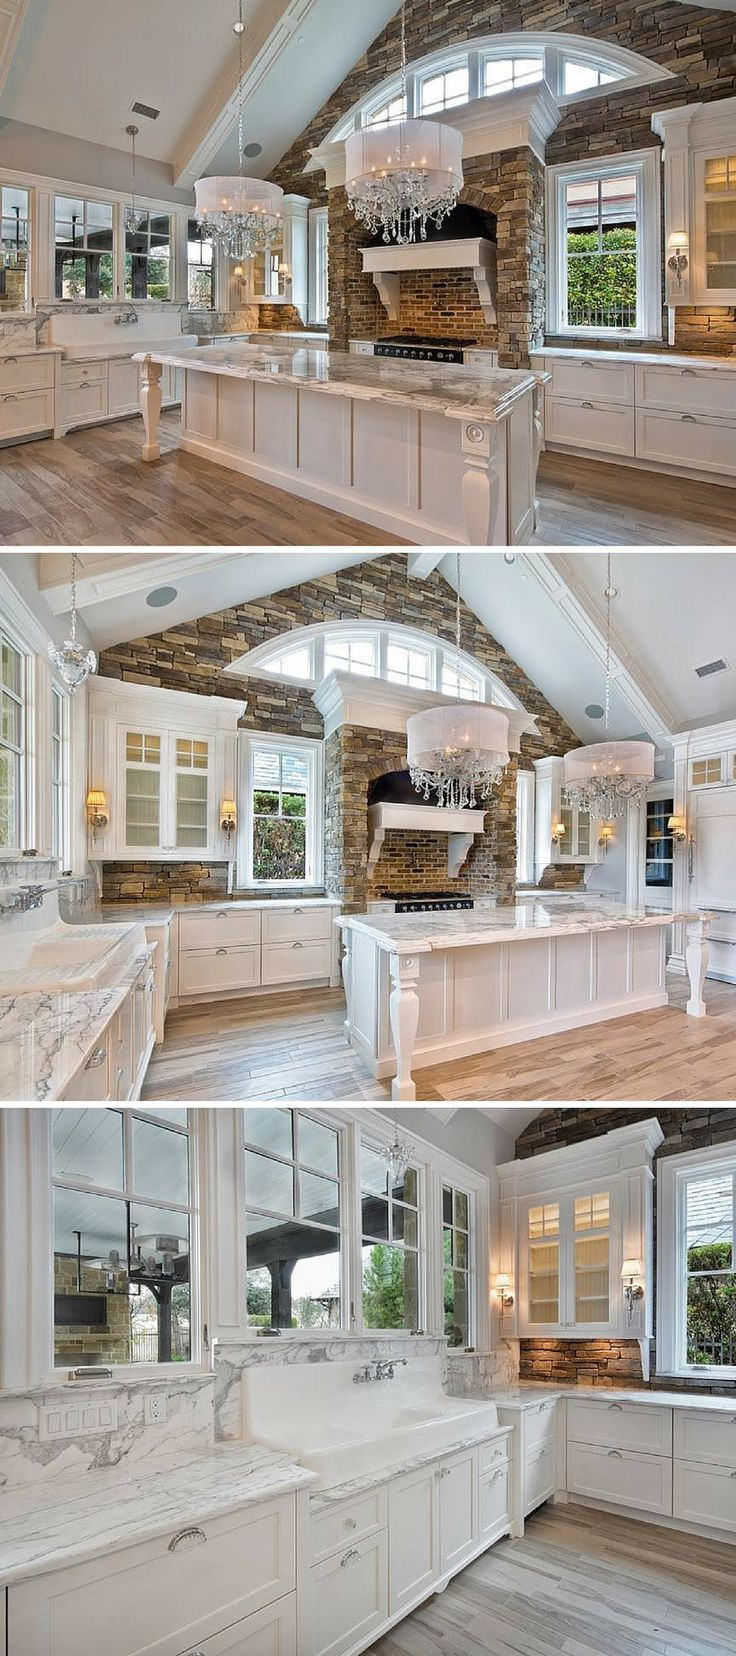 wood-mode kitchen with white cabinets and marble countertops http ... - Zeitlose Reiz Stilvollen Weisen Kuchenschranken